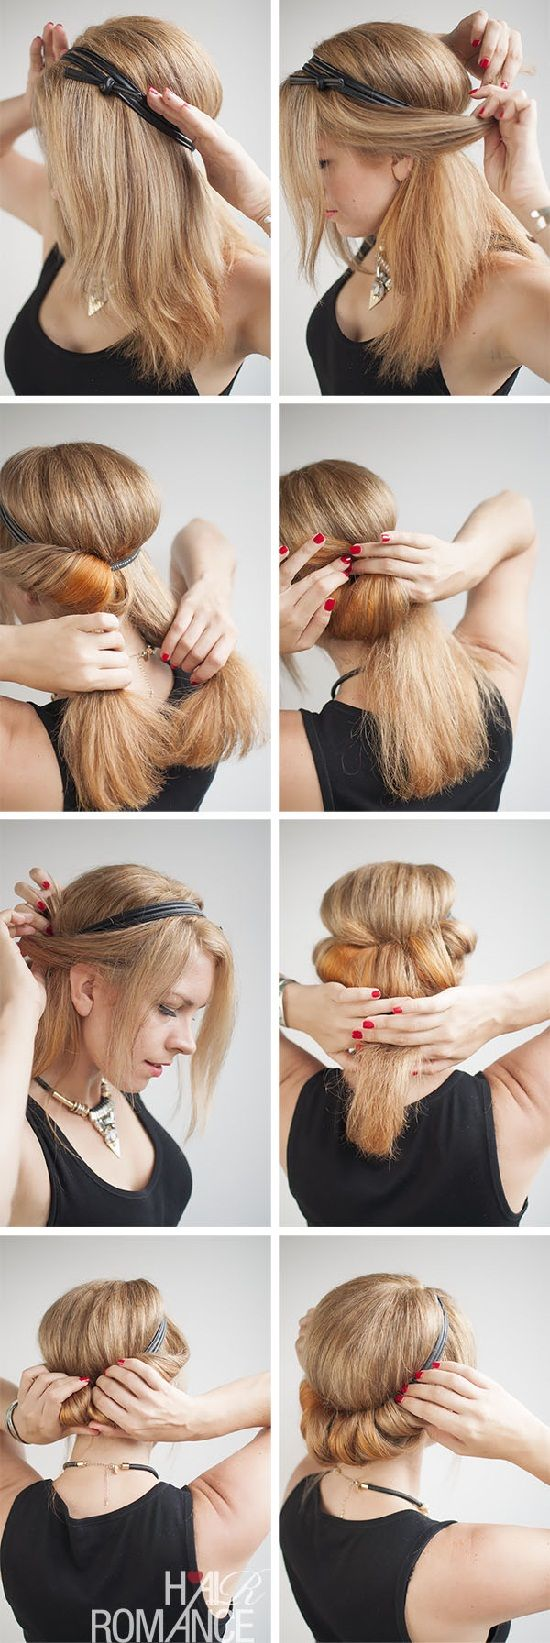 How to do a rolled updo